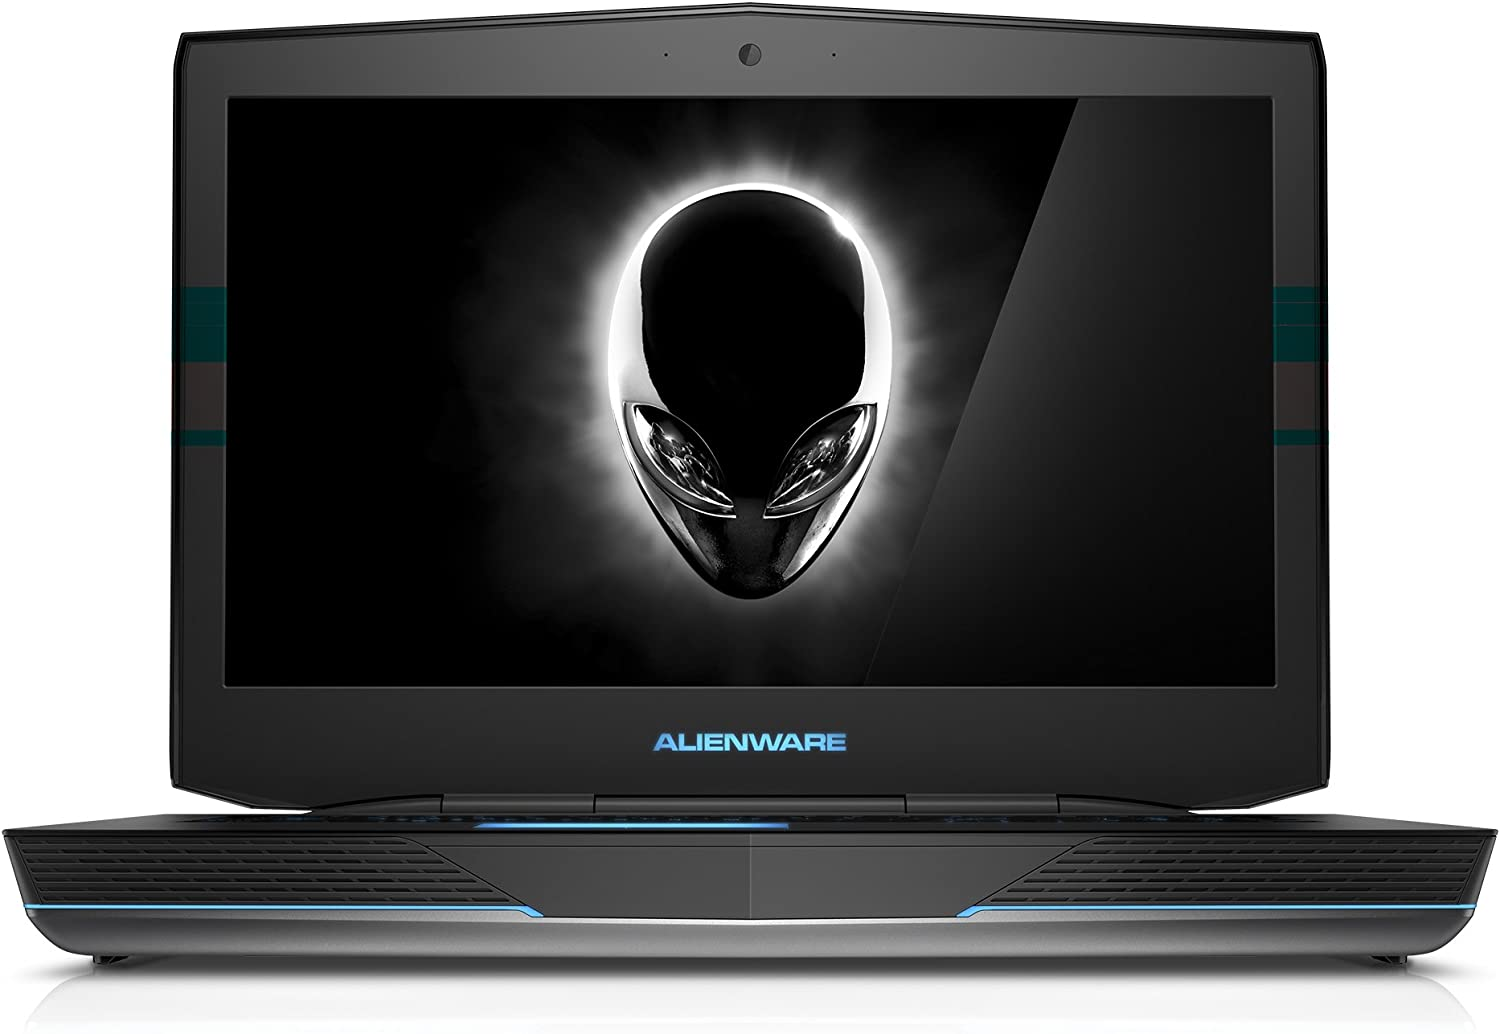 Alienware ALW18-4001sLV 18.4-Inch Laptop (2.5 GHz Intel Core i7-4710MQ Processor, 16GB DDR3L, 1TB HDD, 80GB SSD, Dual NVIDIA GeForce GTX 860M, Windows 7 Home Premium) [Discontinued By Manufacturer]